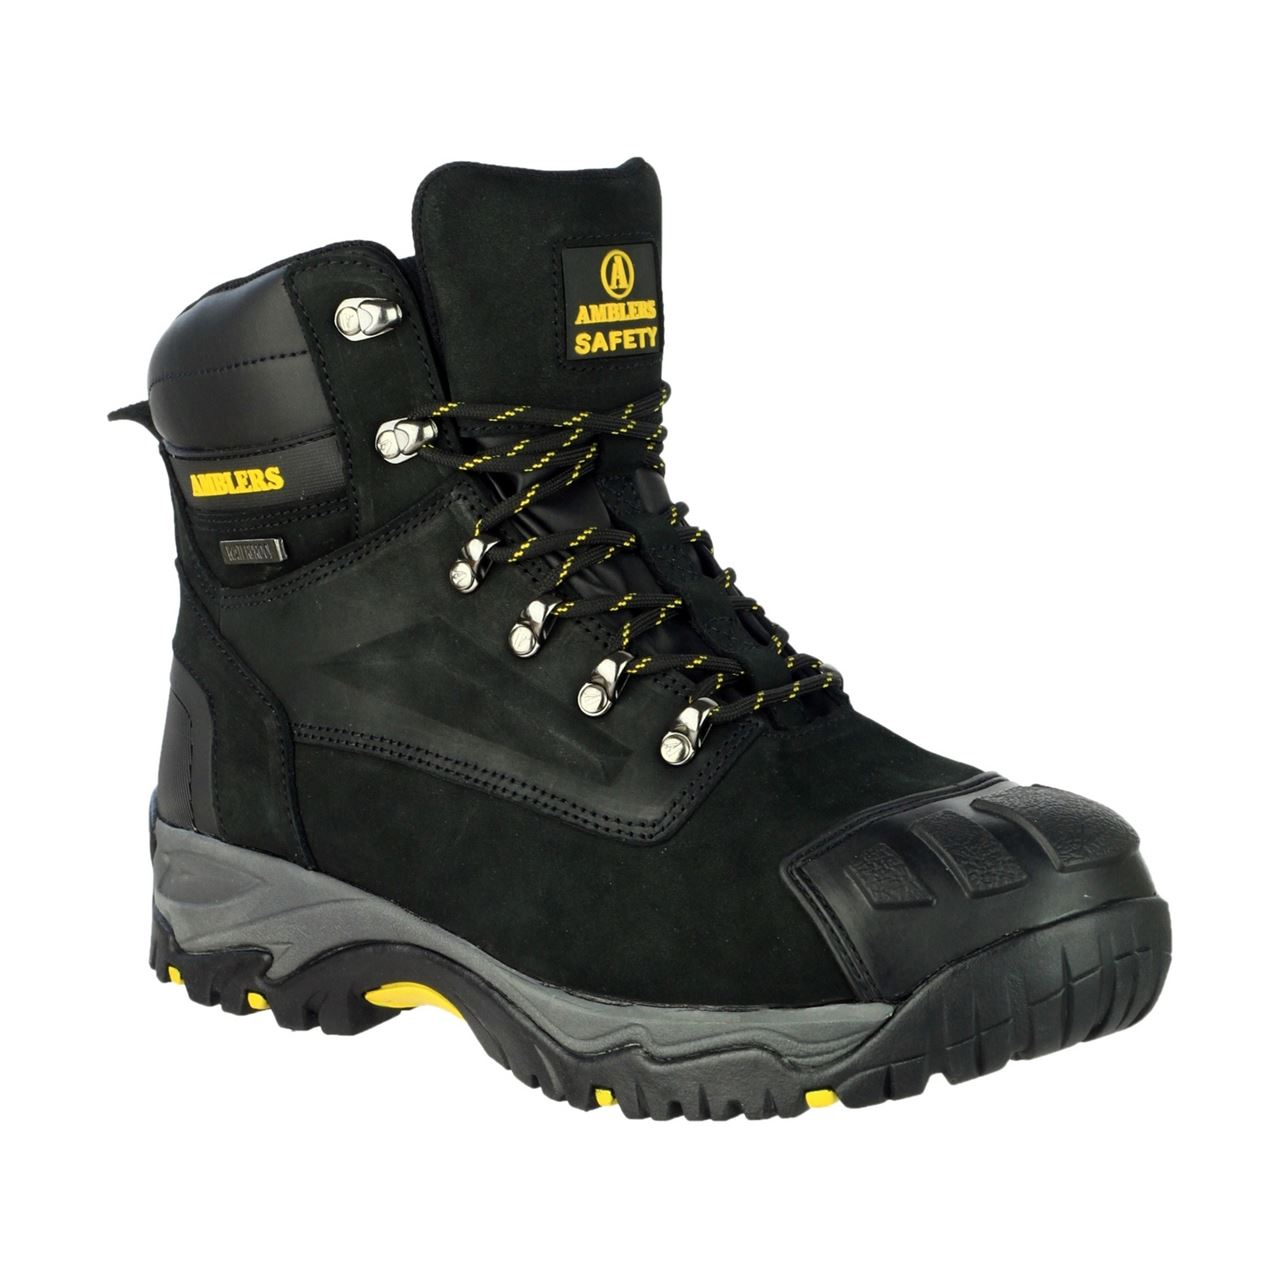 Amblers FS987 Water Resistant S3 Safety Boots with Metatarsal Protection